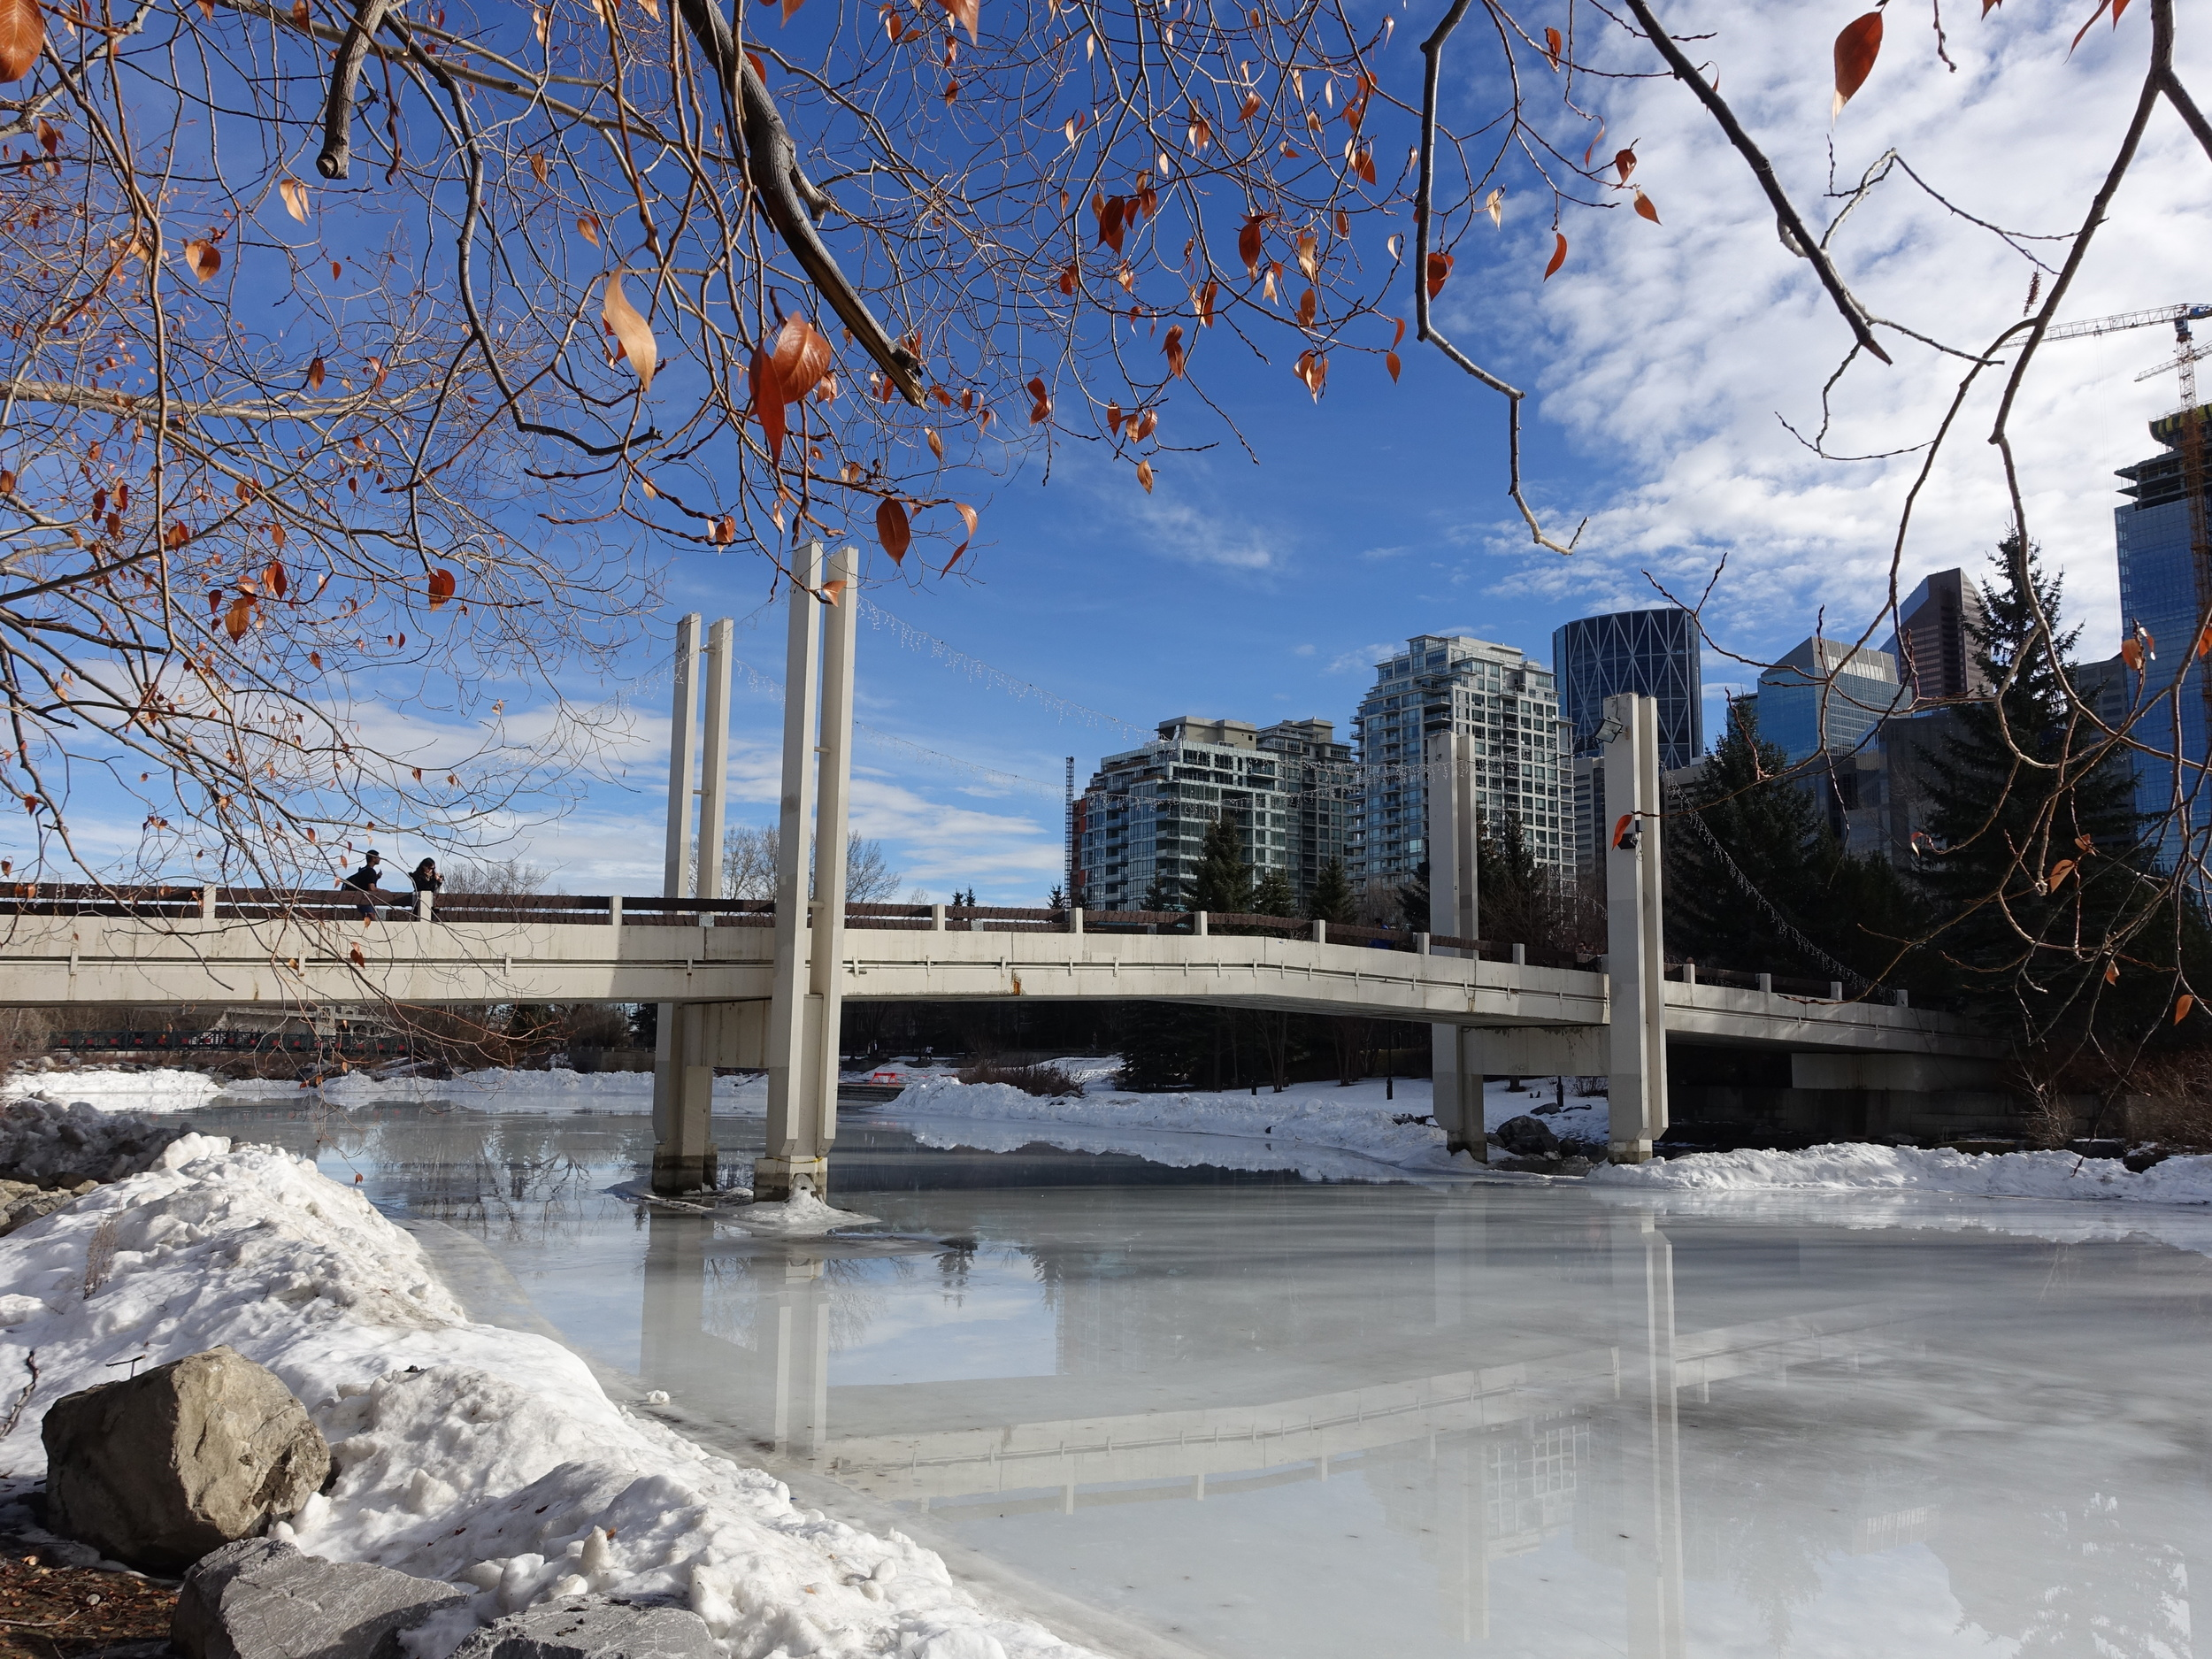 Jaipur Bridge recognizes the friendship and goodwill between Calgary and Jaipur, India. In the winter the Bow River lagoon becomes a skating rink. It is the entrance to Prince's Island Park on of North American's best urban parks.